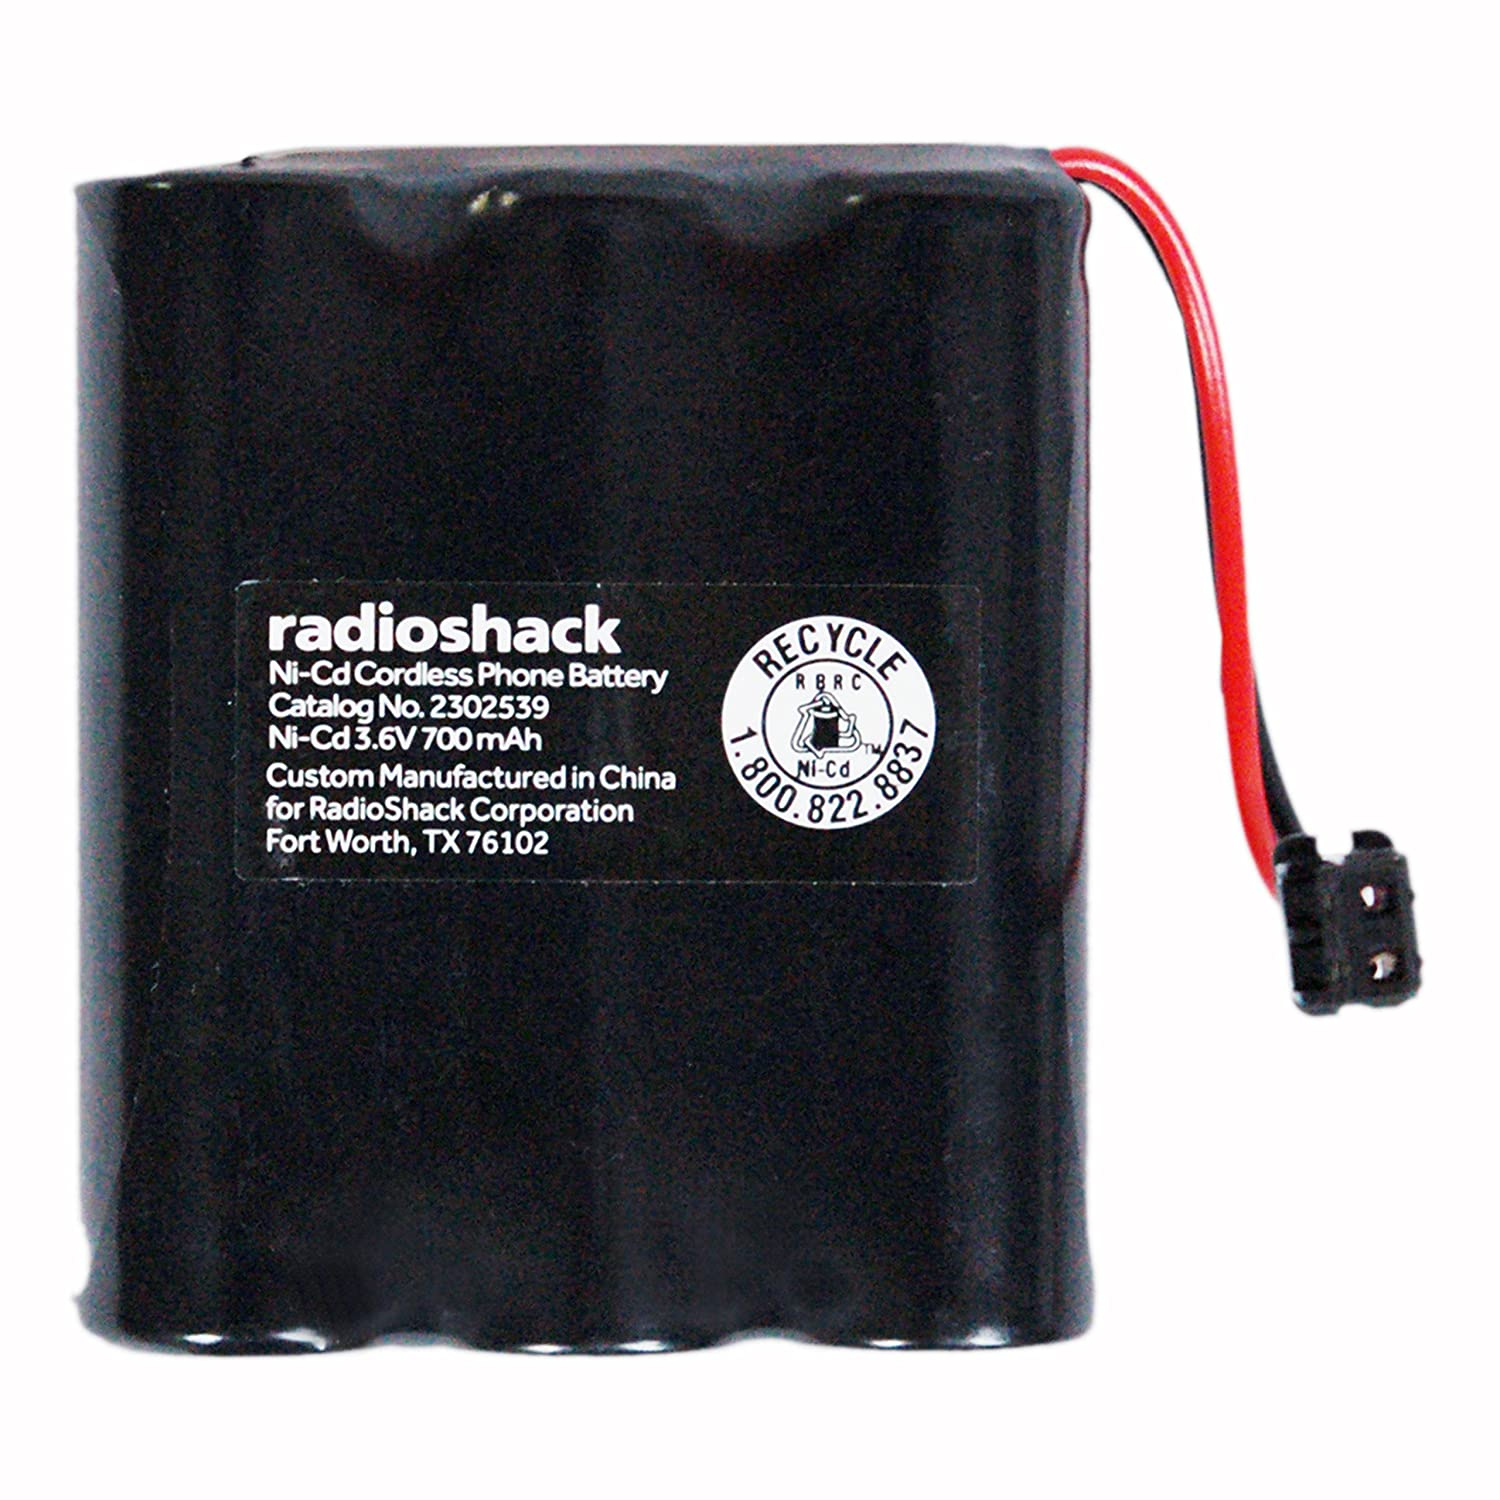 RadioShack 3.6V/700mAh Cordless Phone Battery for VTech (2302539)